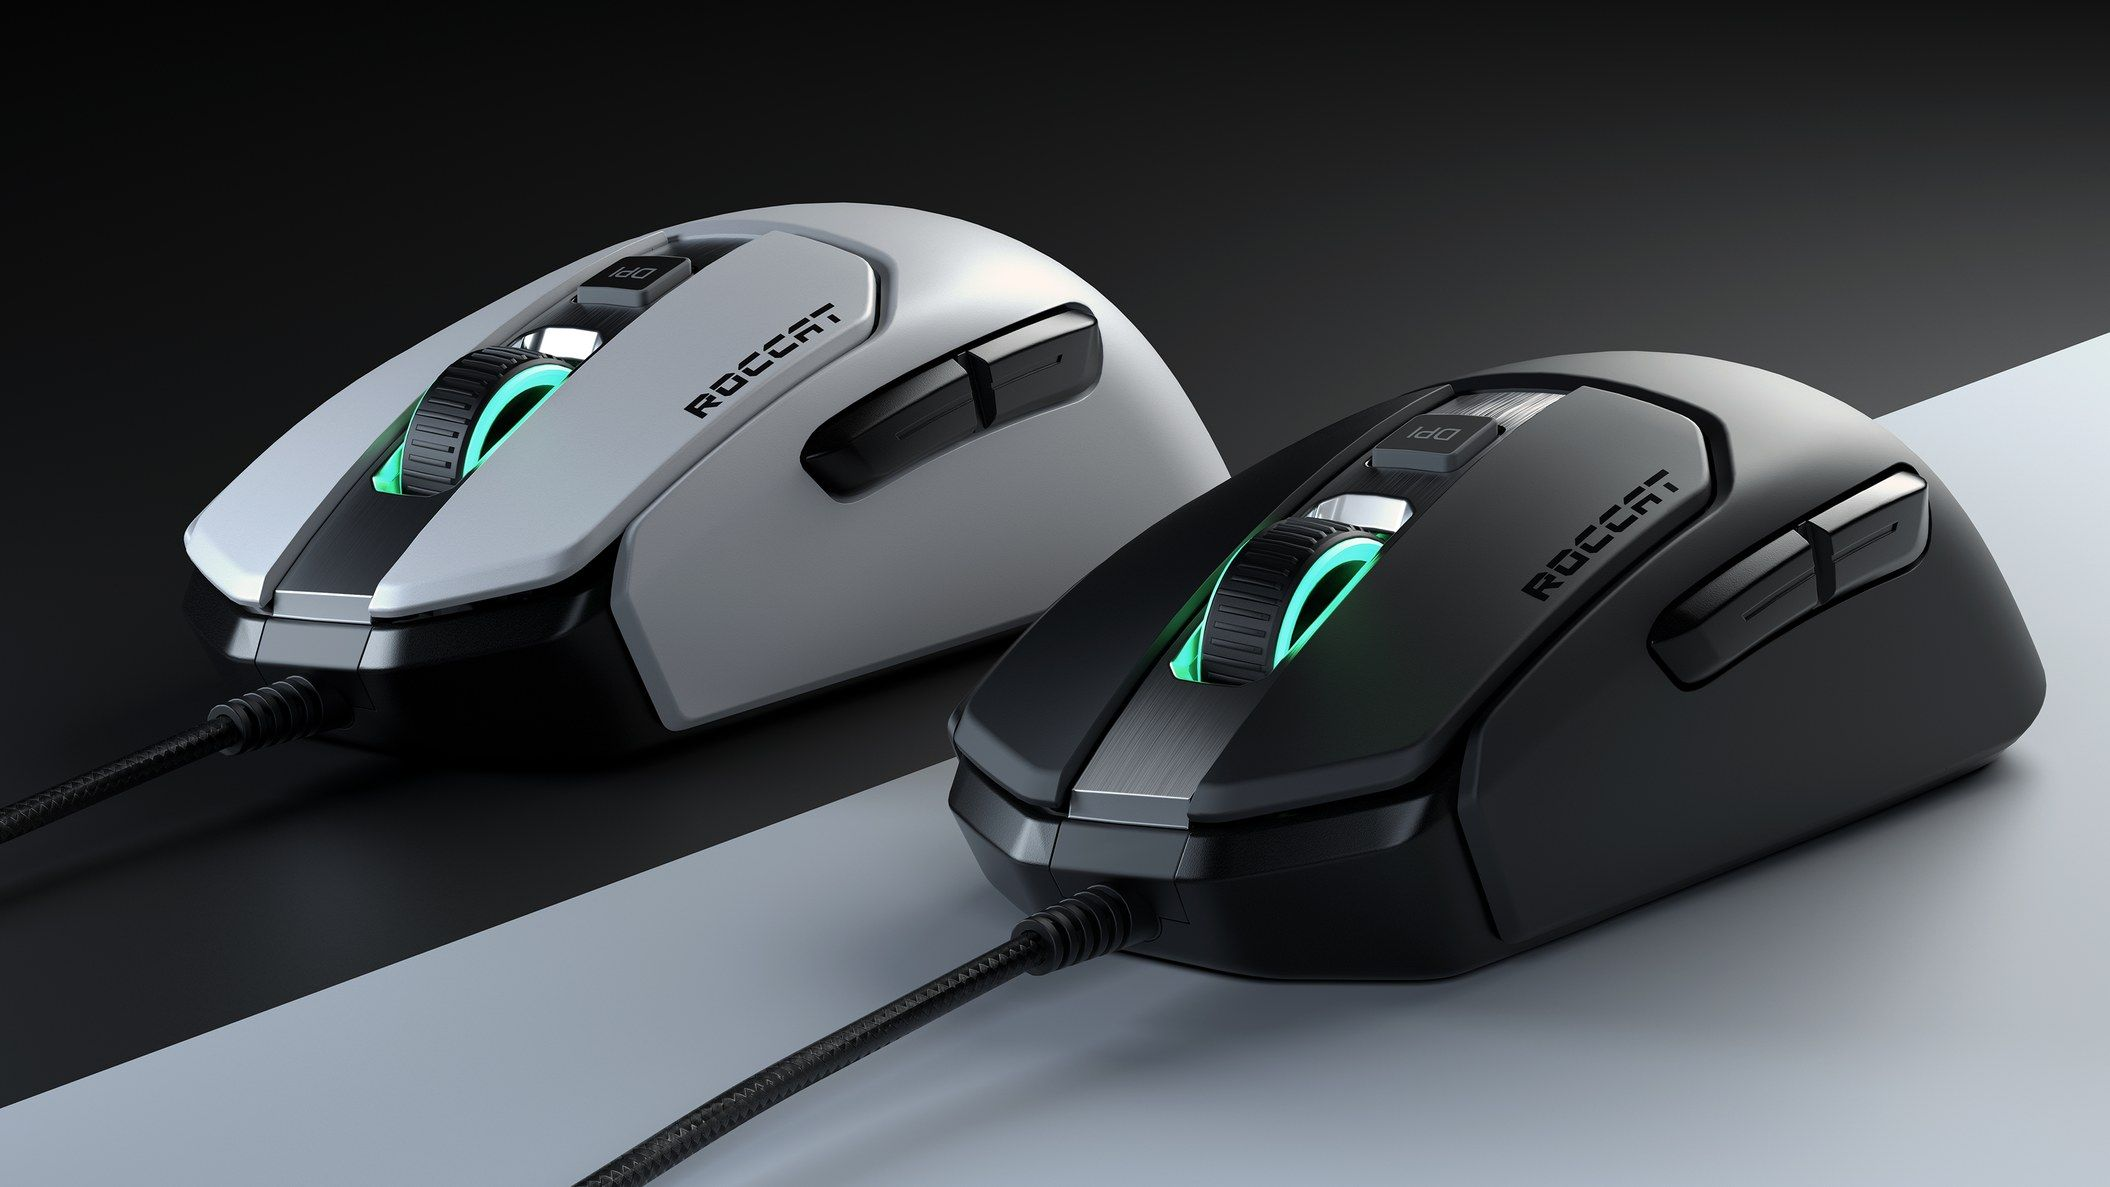 The Roccat Kain 120 Aimo